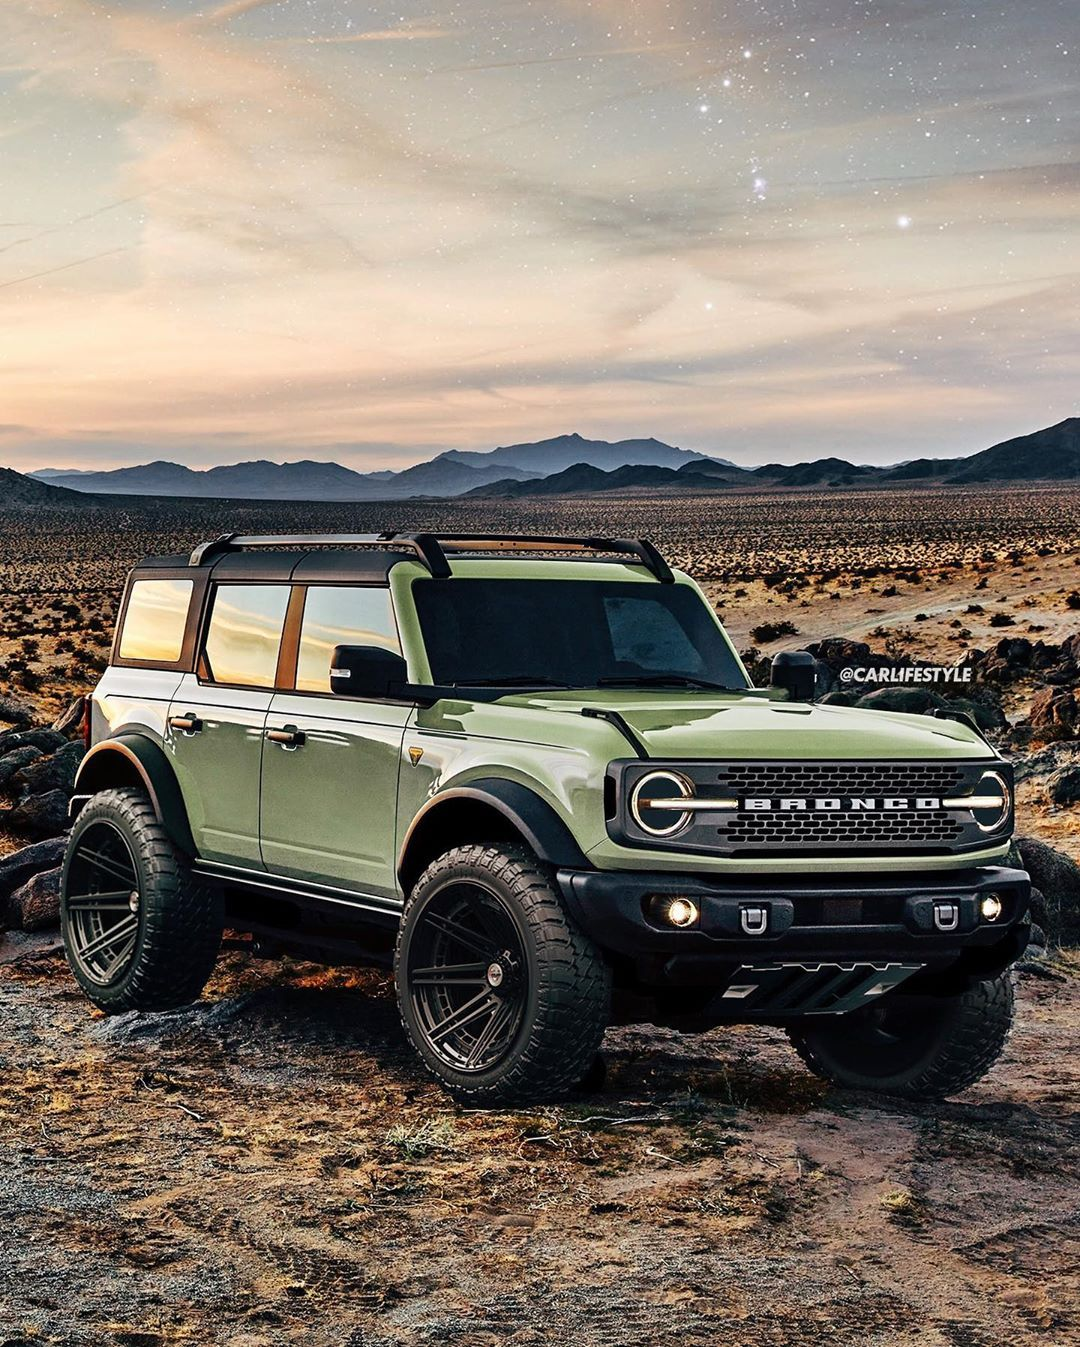 Carlifestyle On Instagram 2021 Ford Bronco Lifted On Some